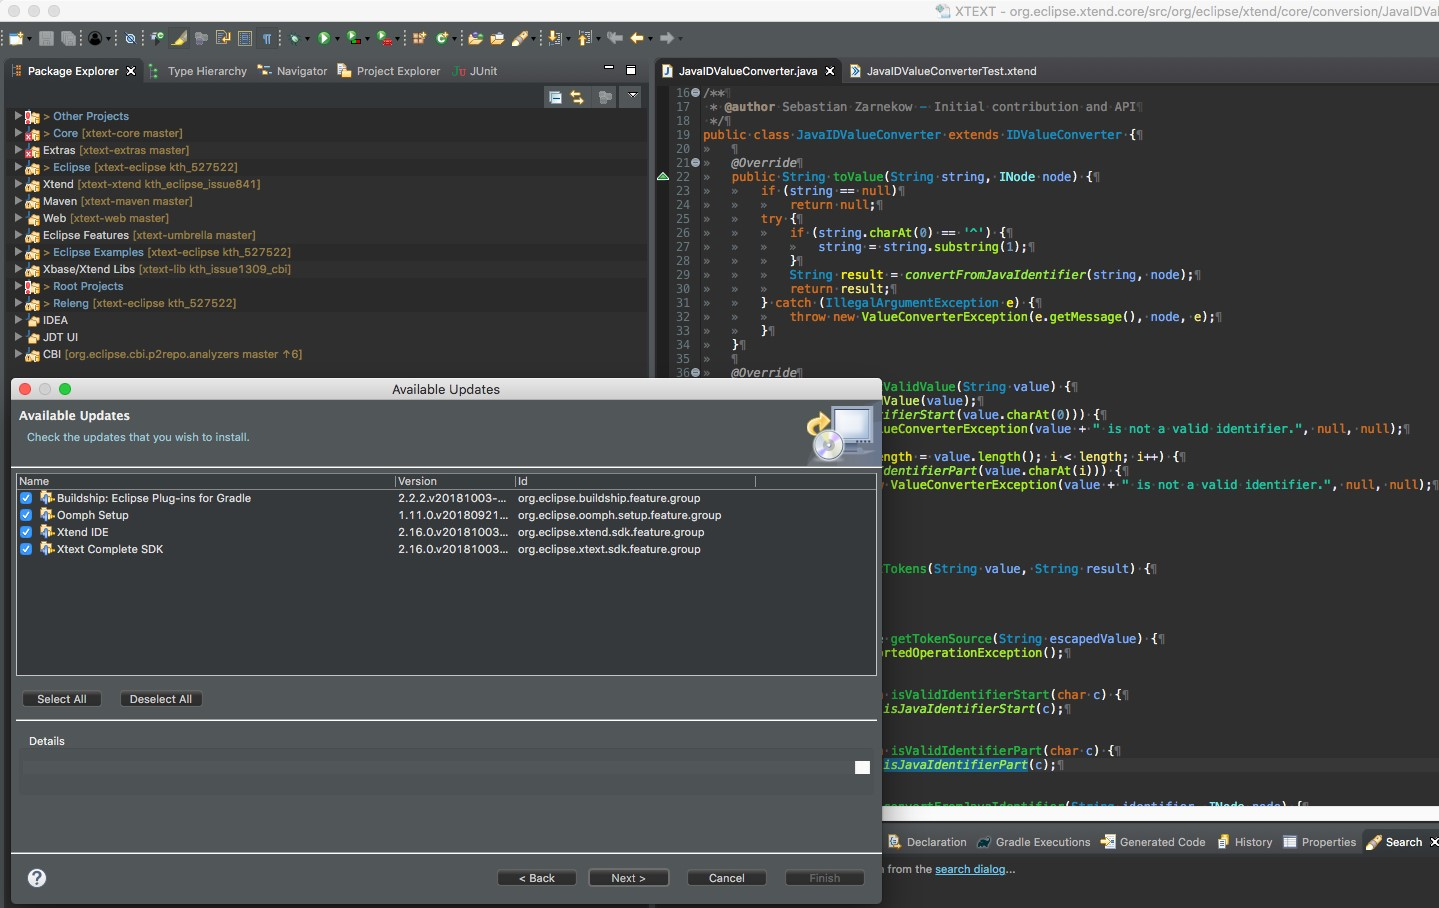 Eclipse-IDE mit Dark-Theme. (Abb. 3)